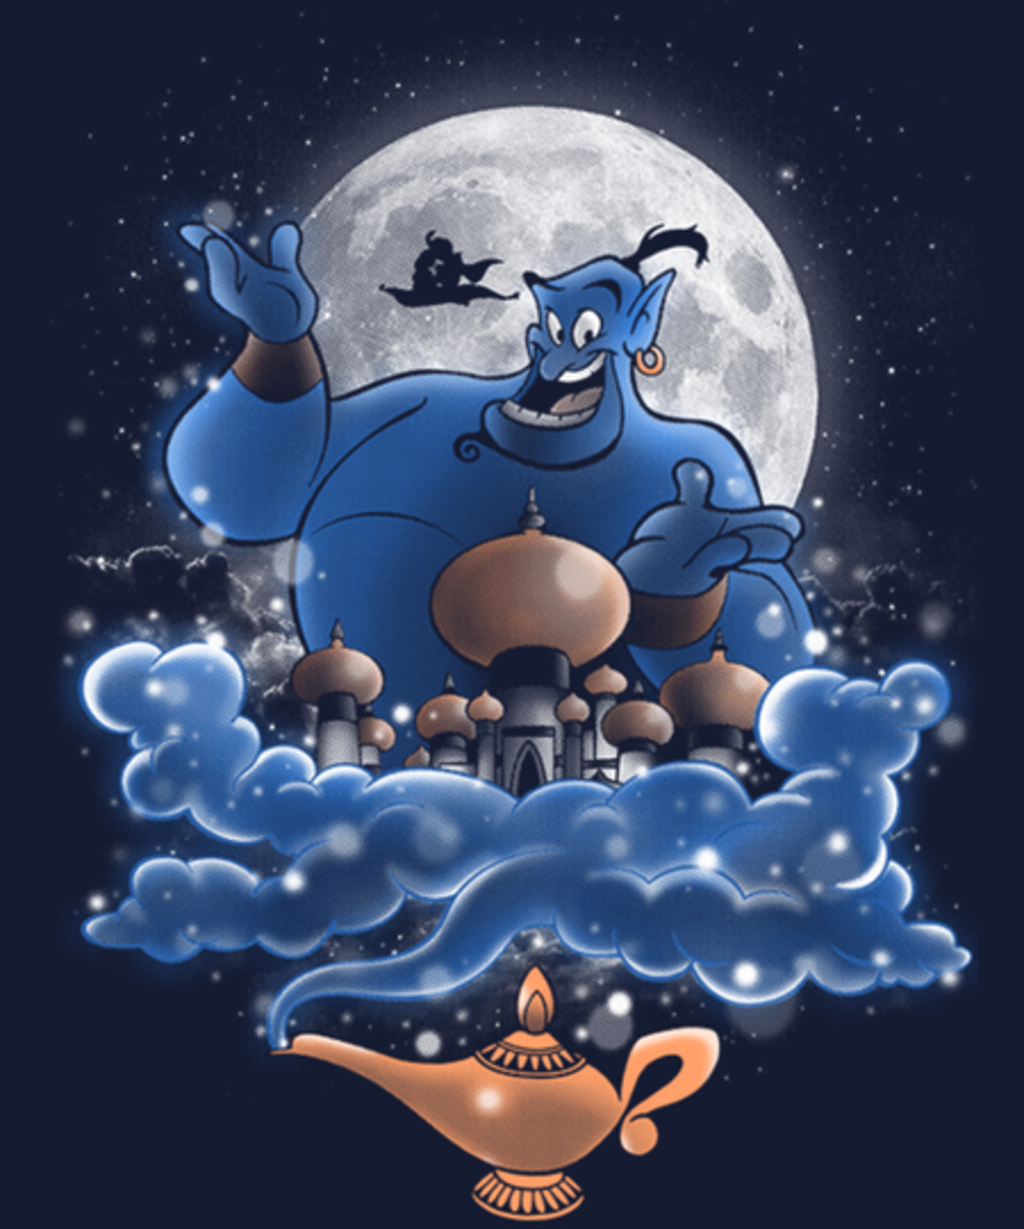 Qwertee: Moonlight Genie